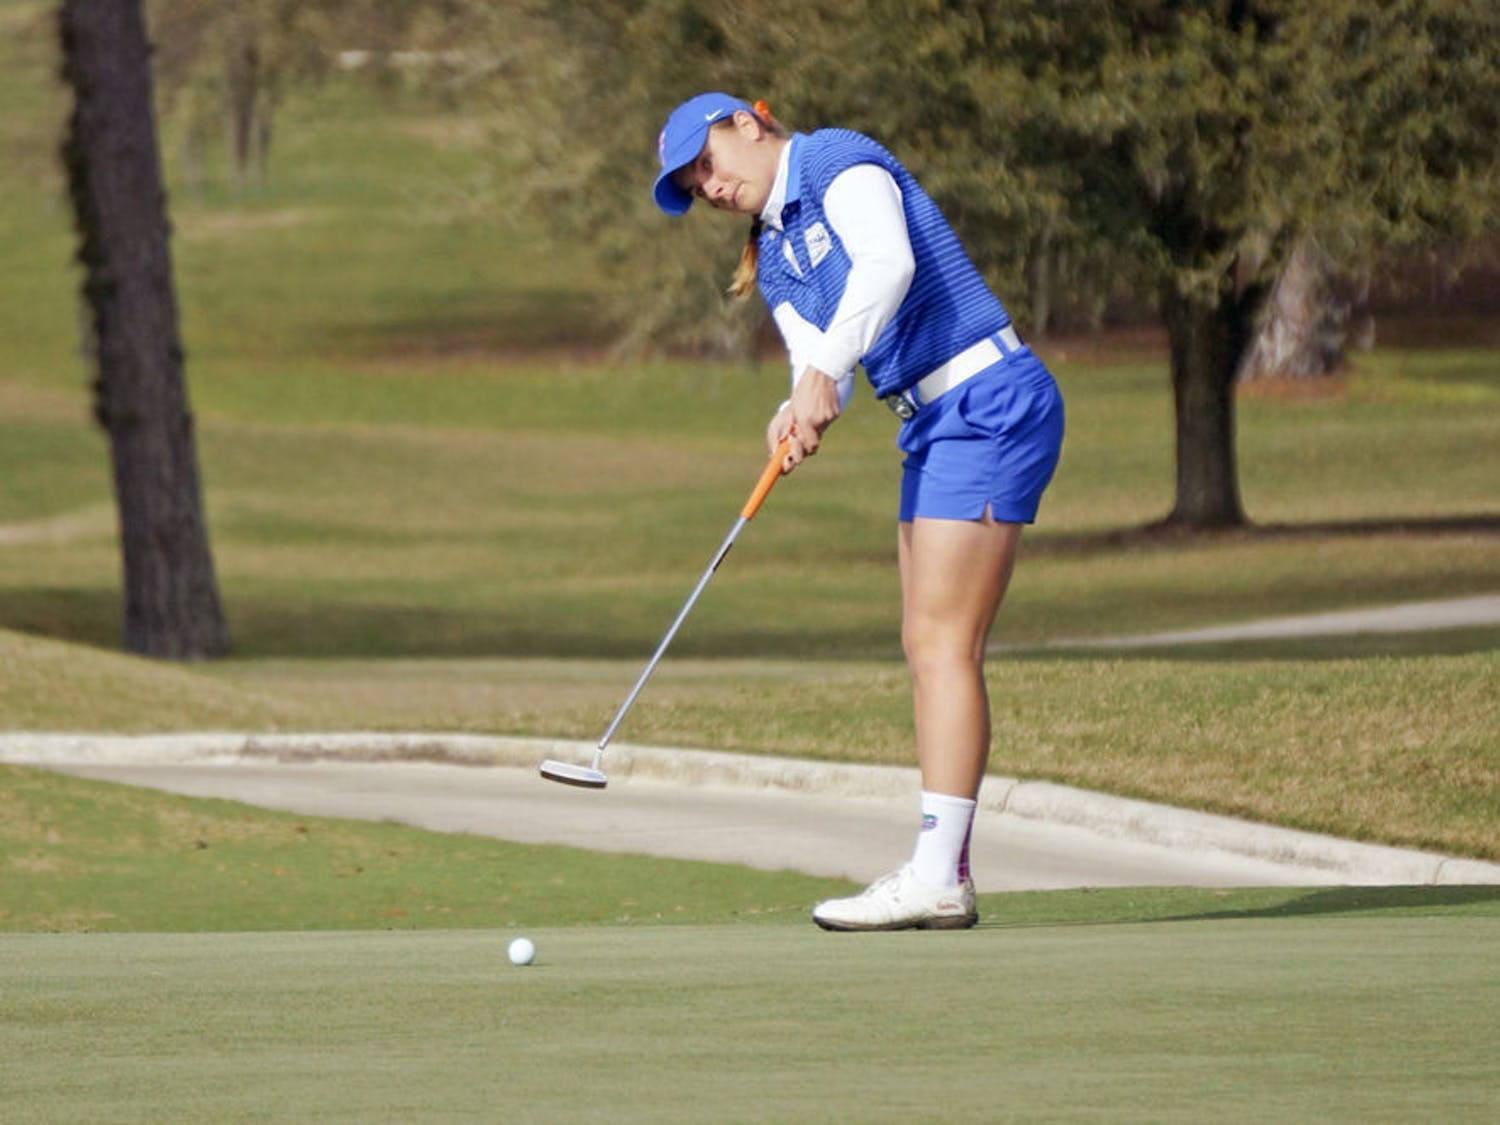 Taylor Tomlinson putts during the 2015 Suntrust Gator Invitational at the Mark Bostick Golf Course in Gainesville.